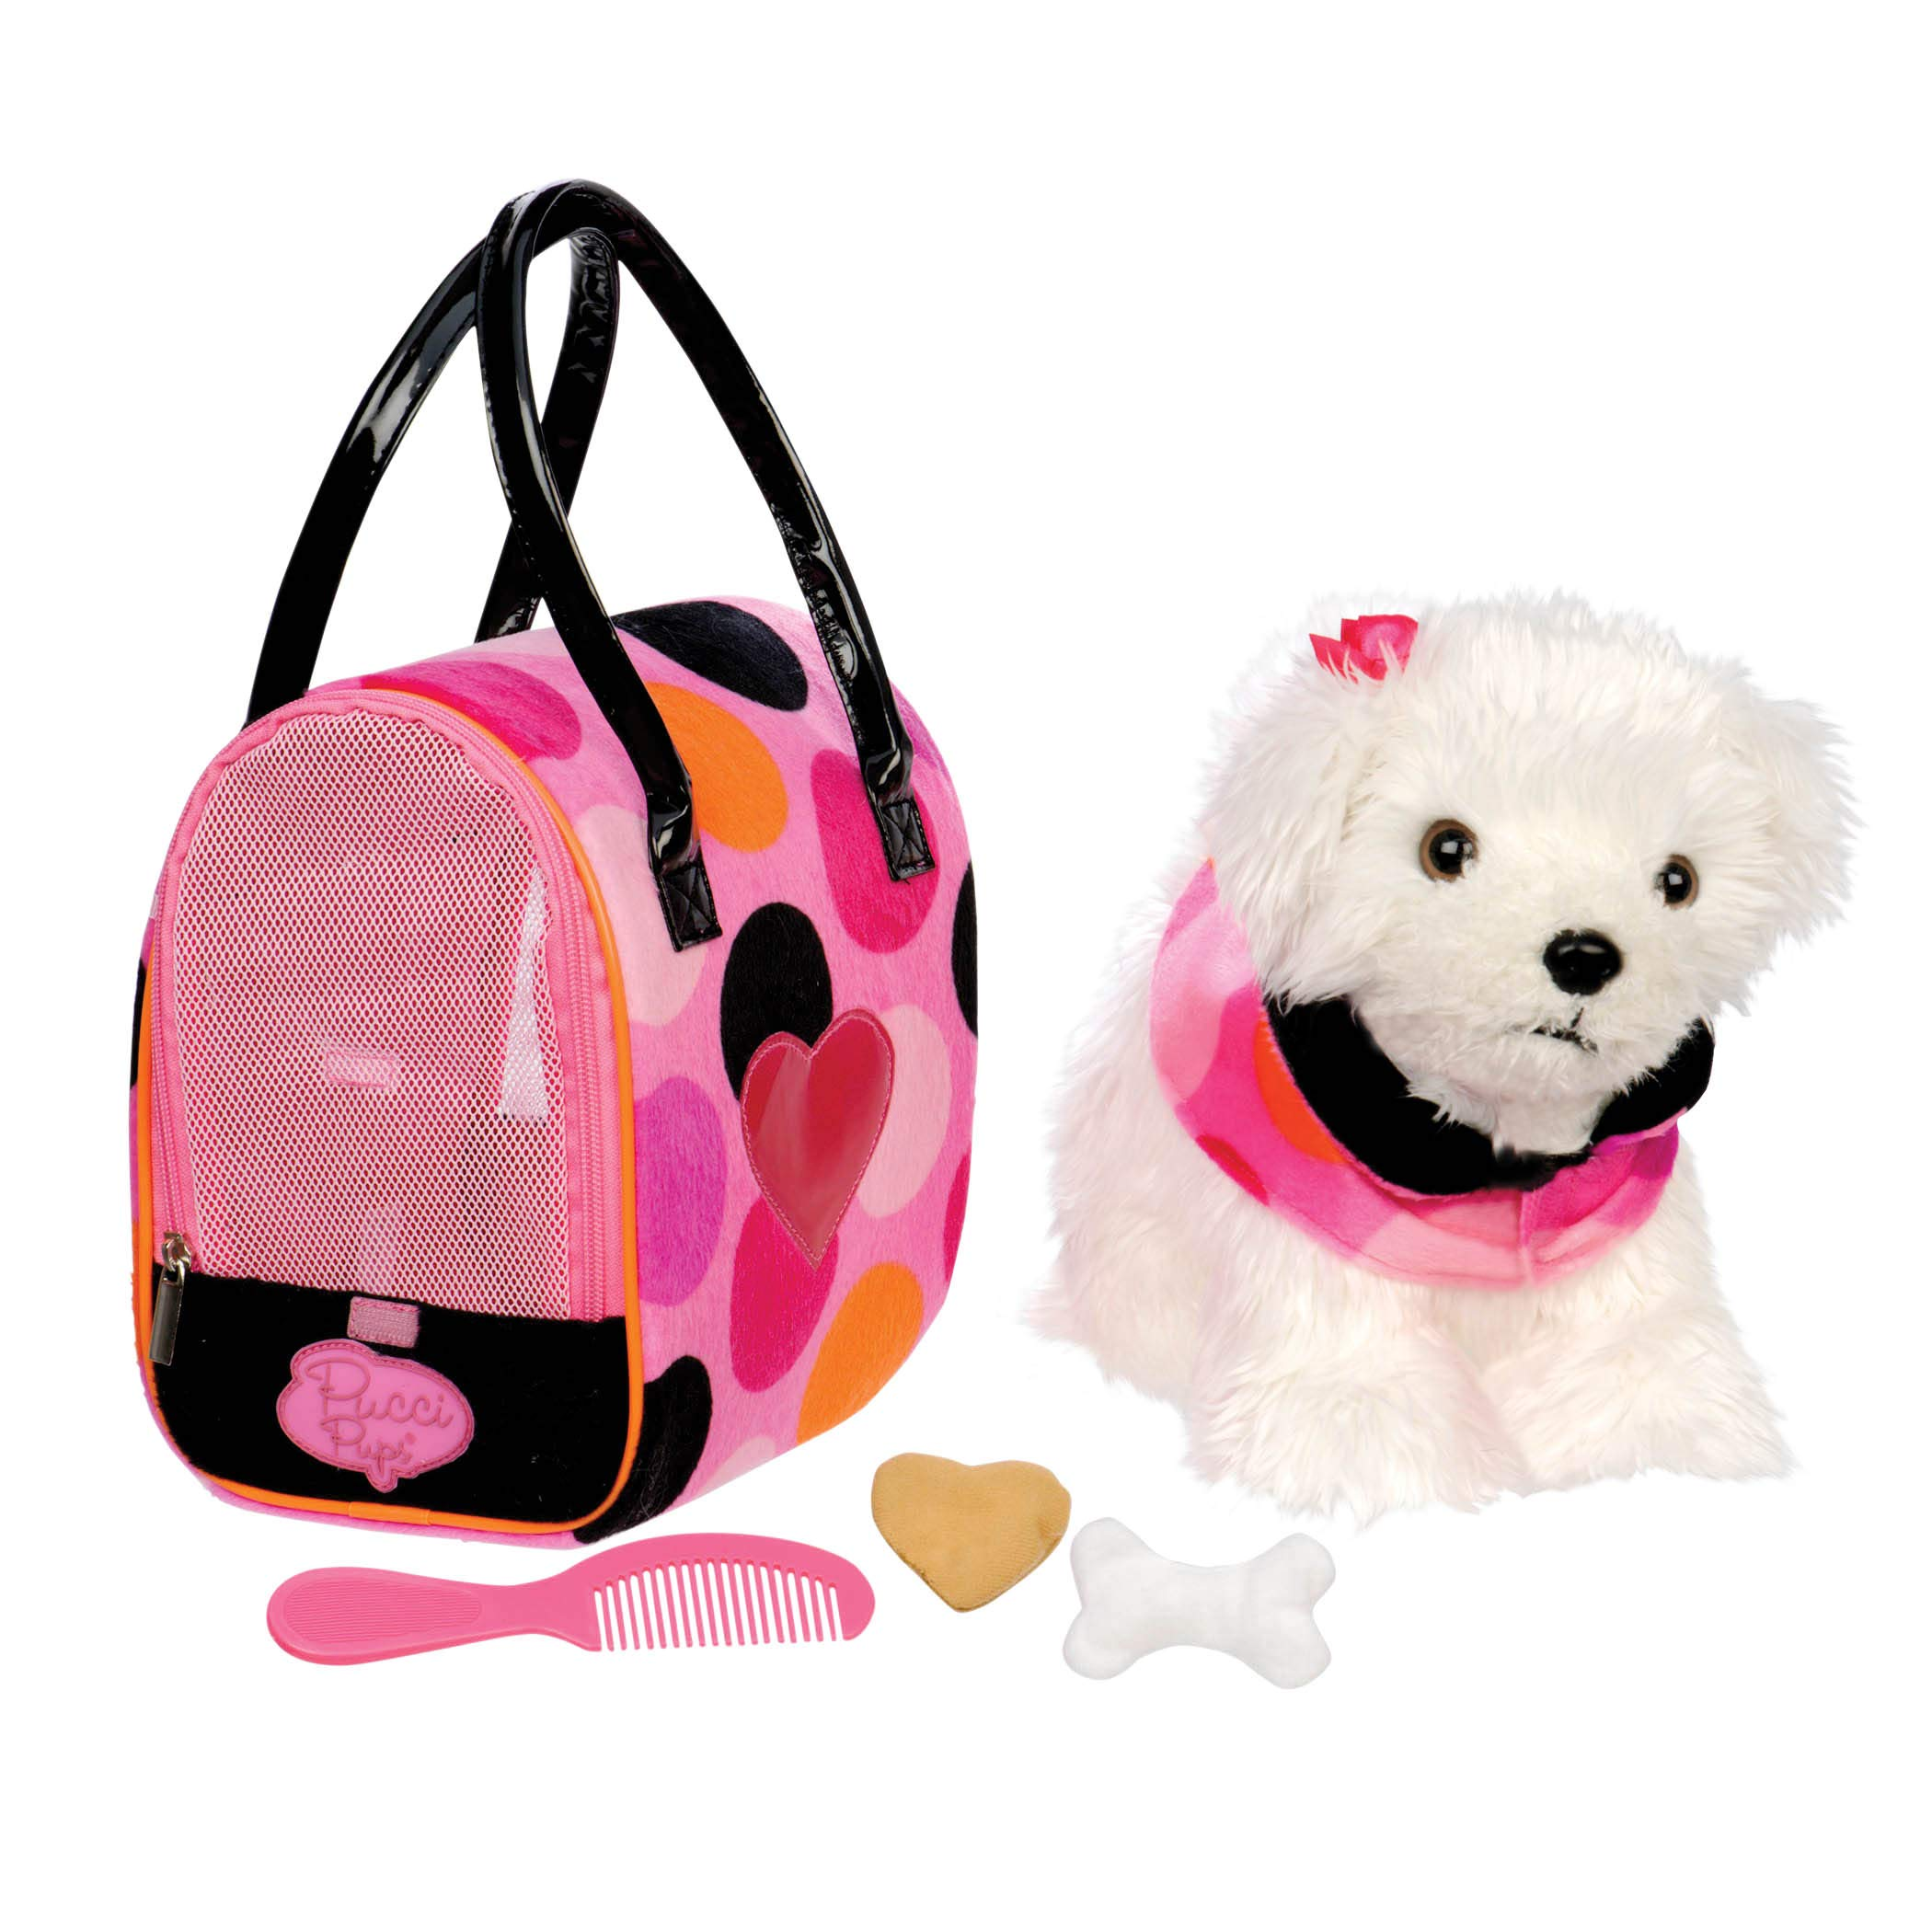 Pucci Pups by Battat - Bichon Frisé Stuffed Puppy with Colorful Polka Dot Stuffed Animal Bag and Pet Accessories by Pucci Pups by Battat